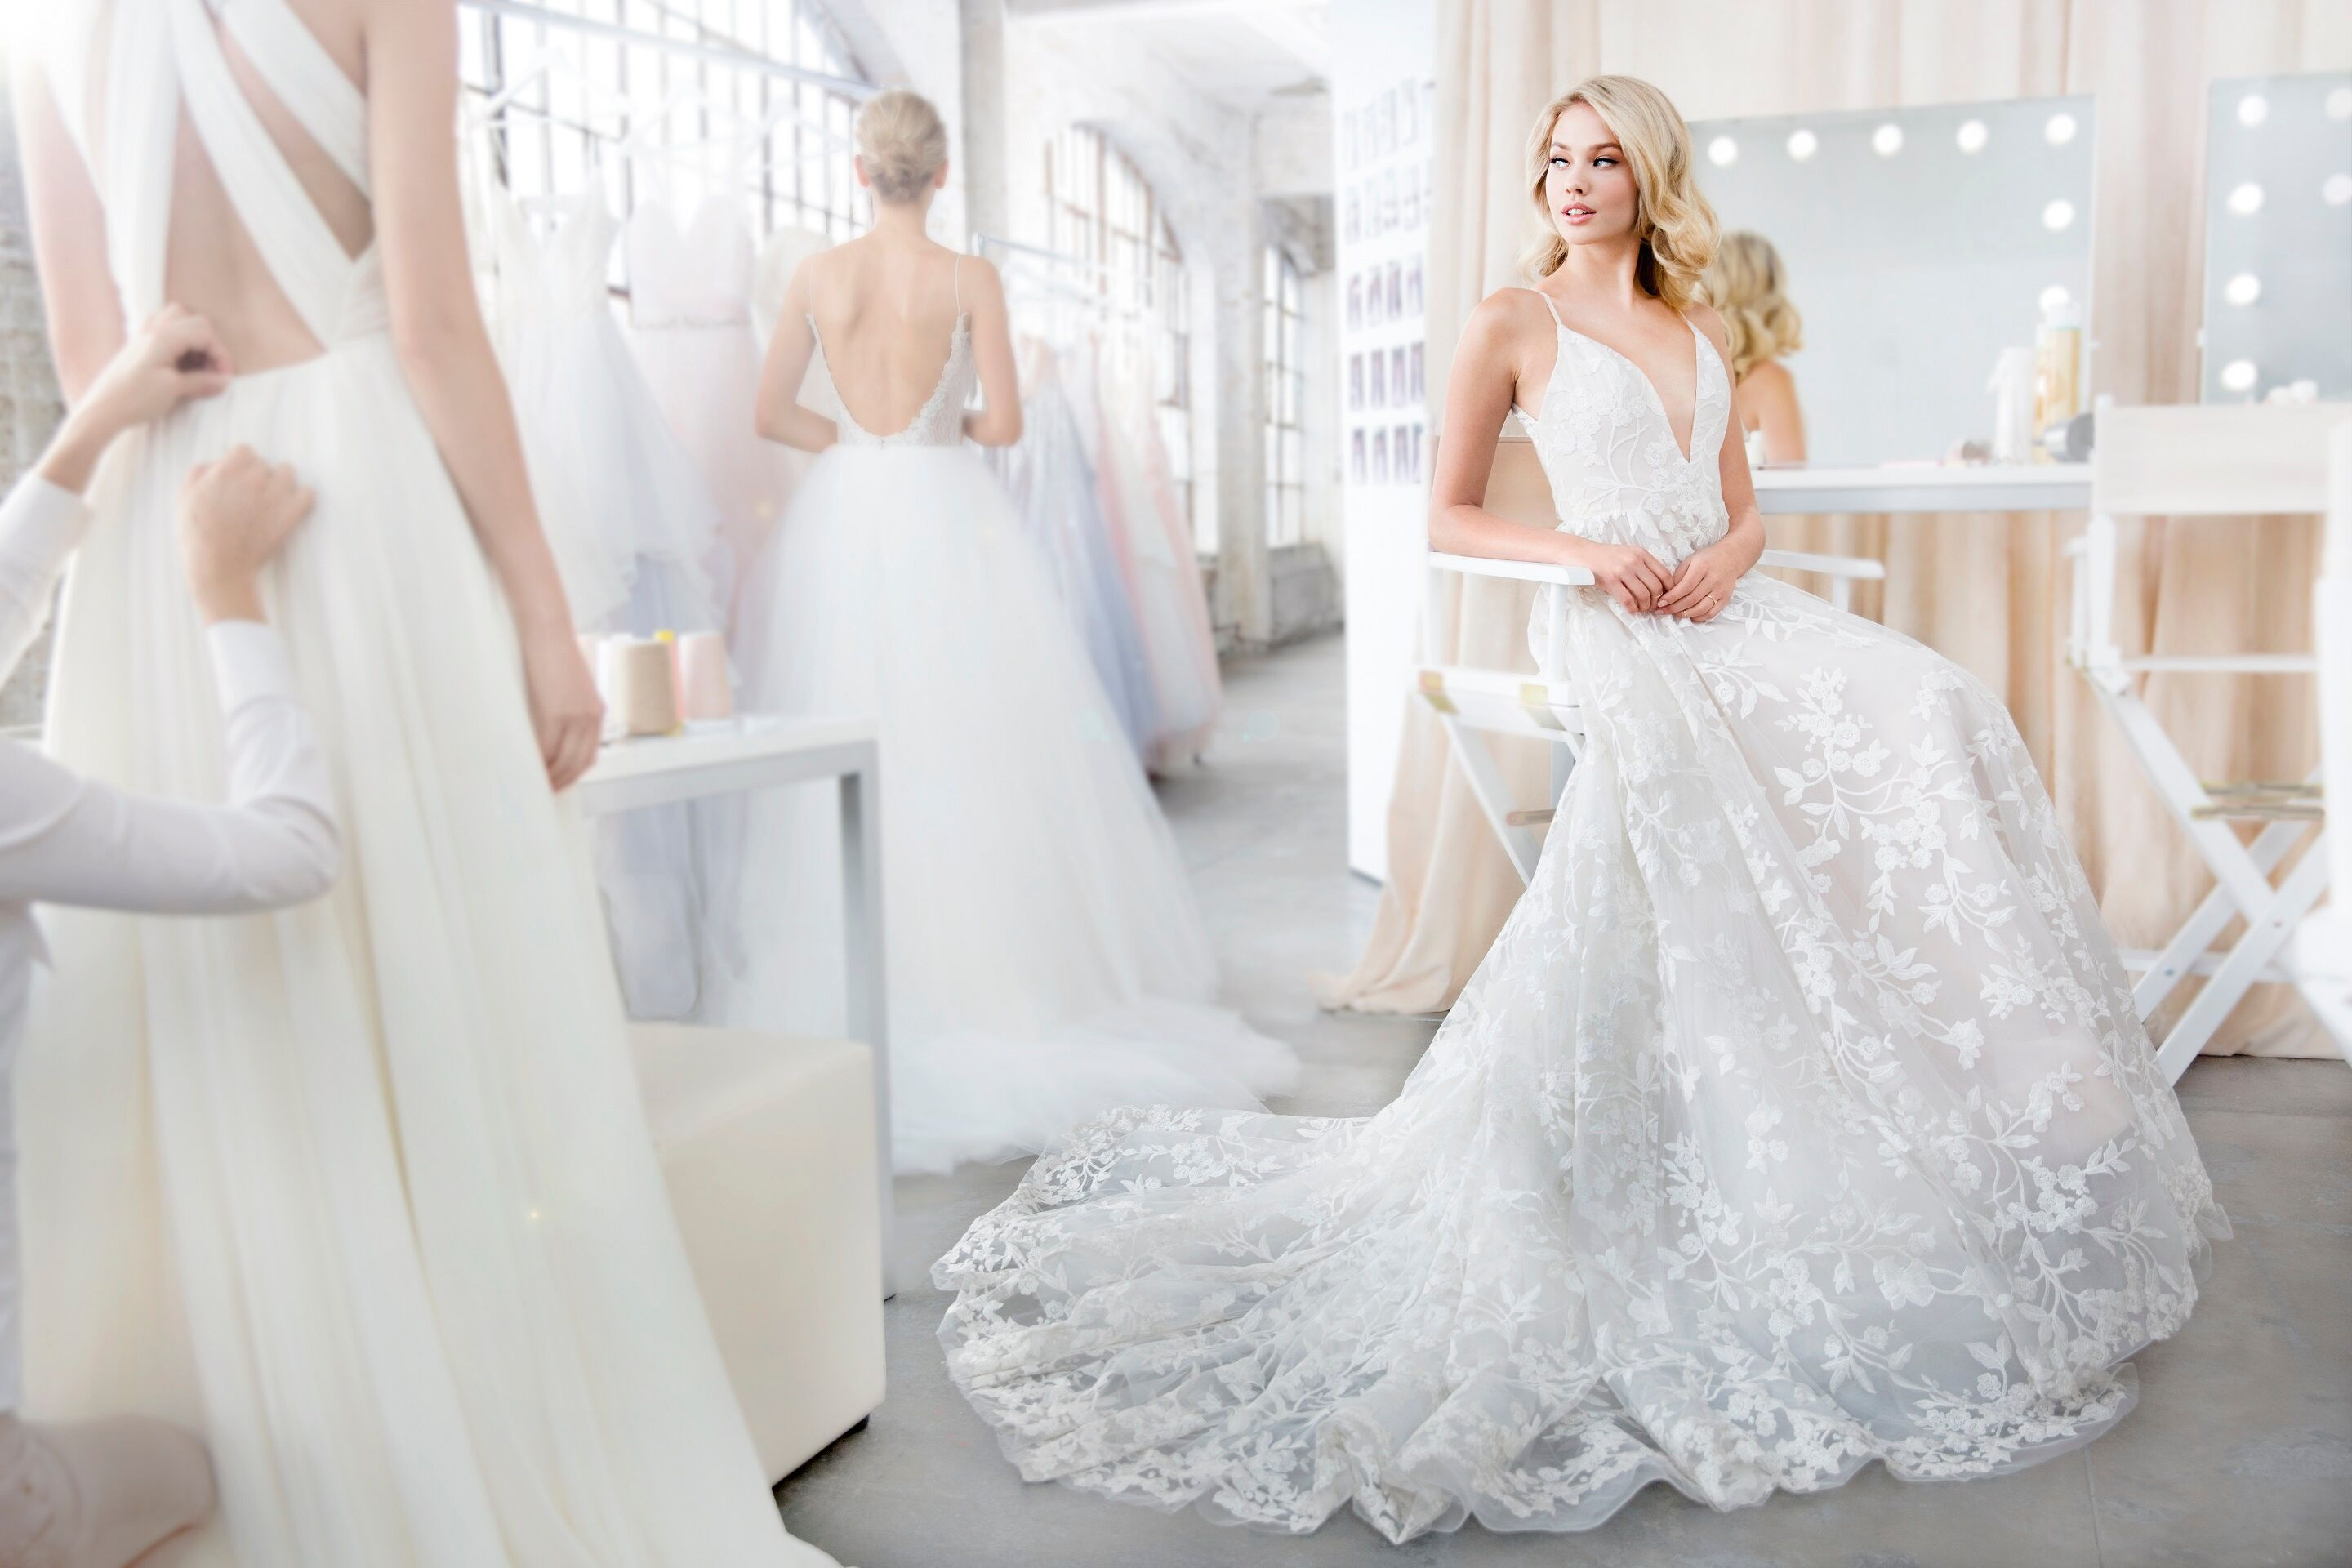 My Bridal Fashion Guide To Simple Wedding Dresses Nyc: Bridal Salons - New York, NY